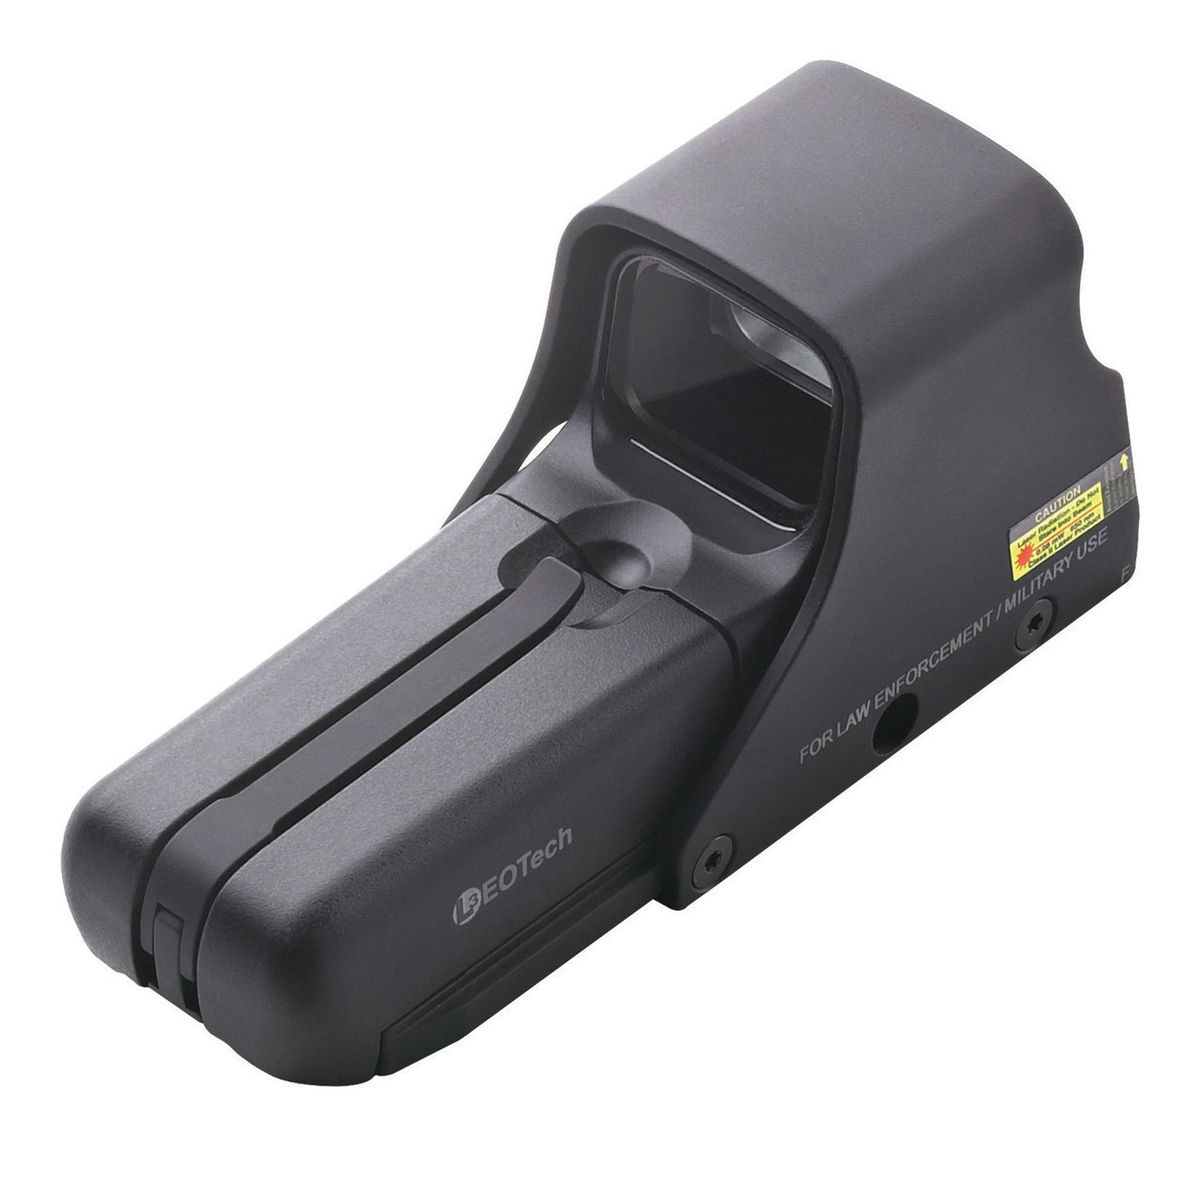 Eotech Crossbow Holographic Red Dot Sight with Ranging Reticle 512-XBOW by L-3